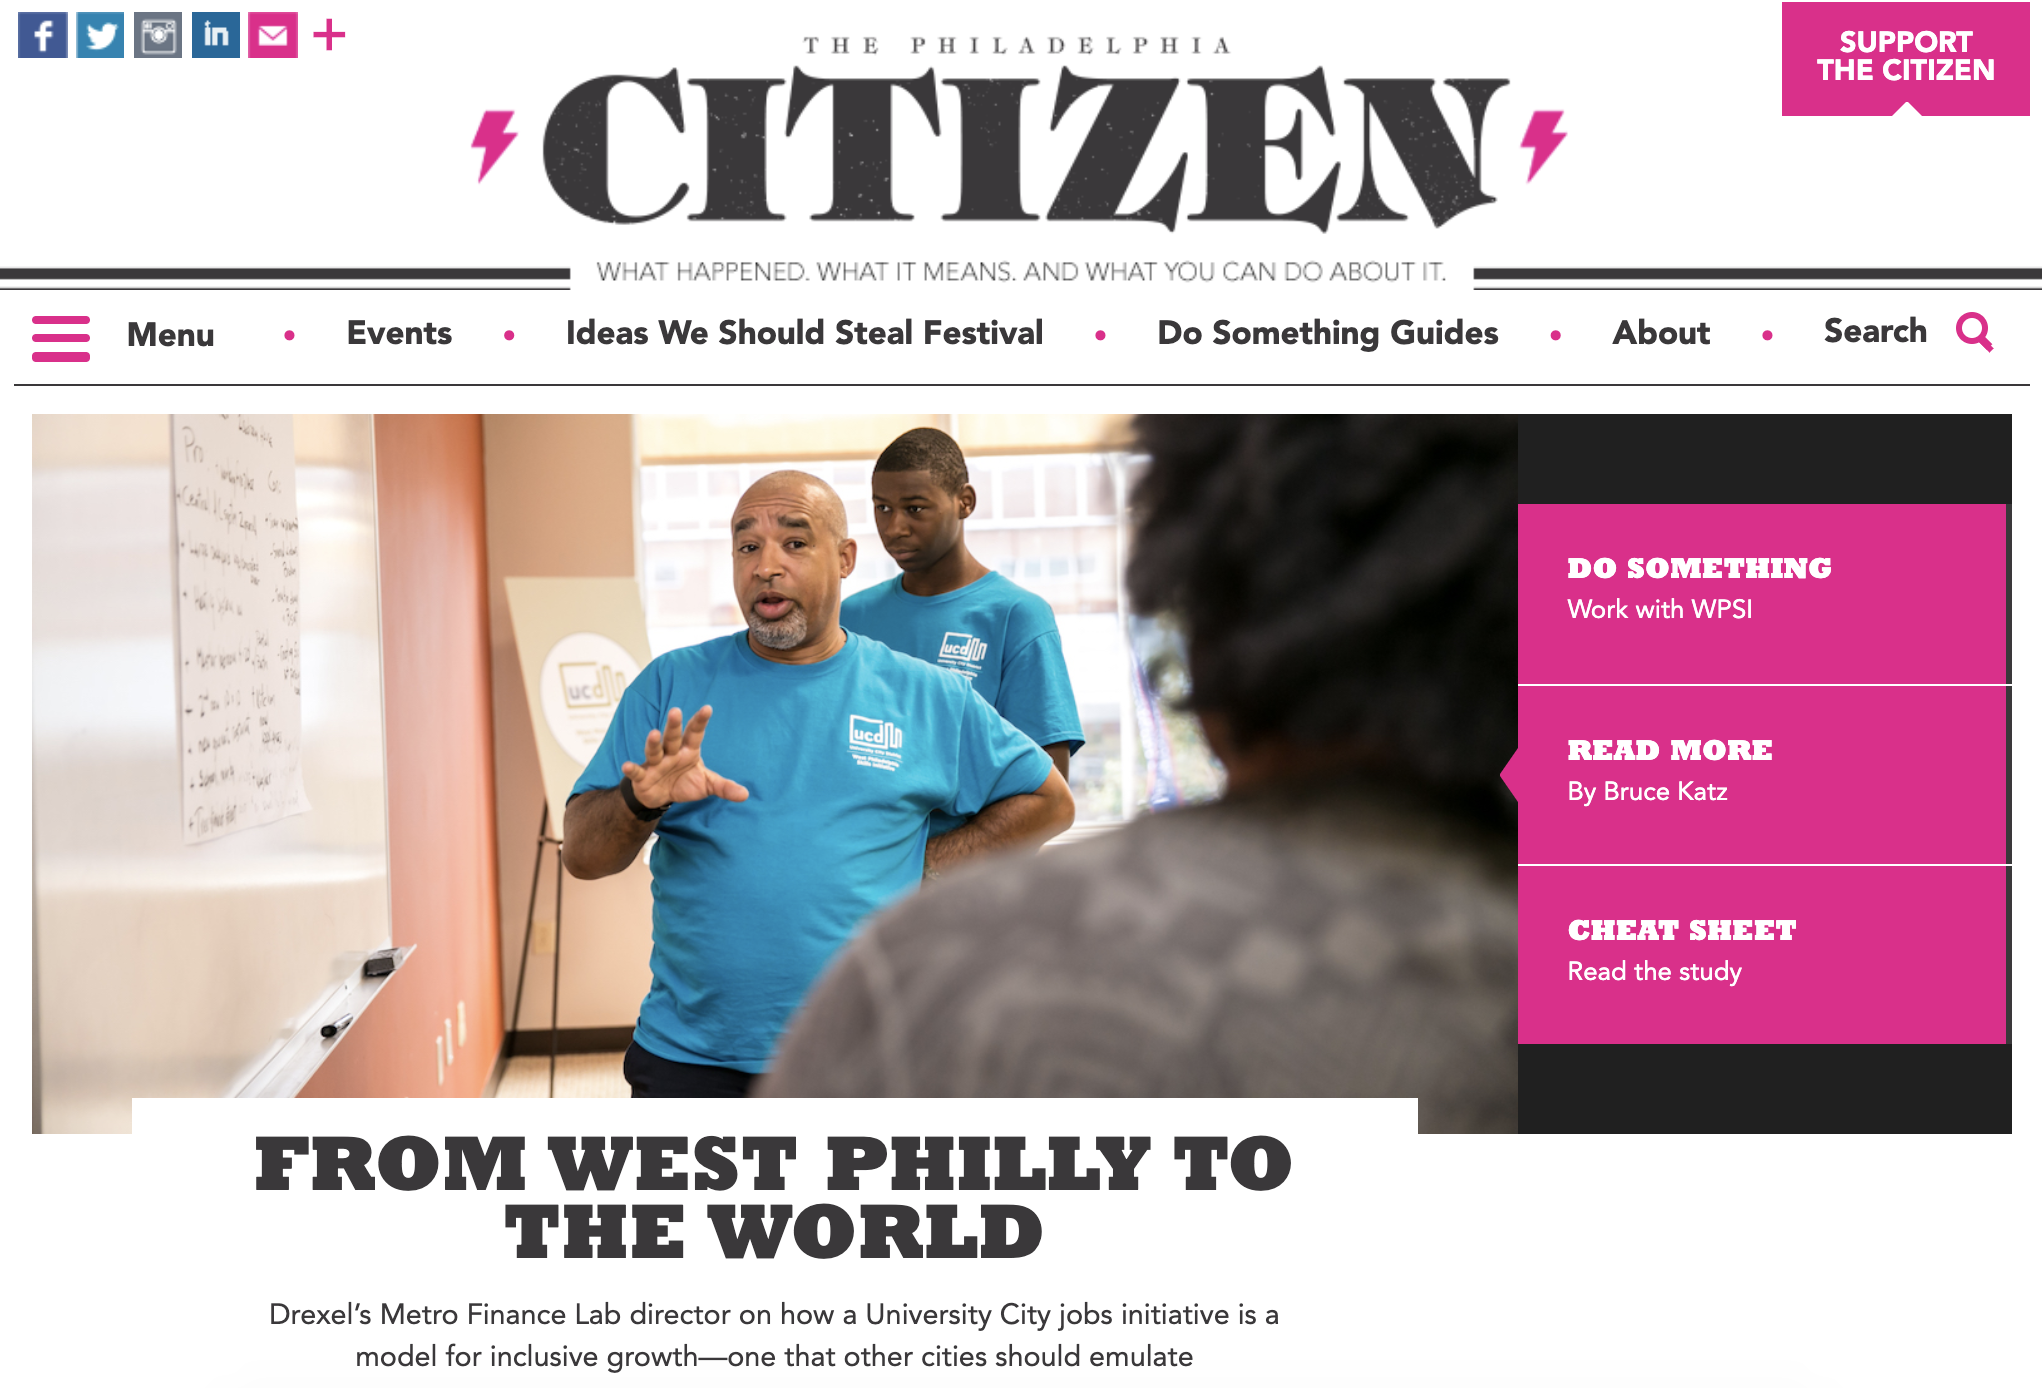 The West Philadelphia Skills Initiative (WPSI)   From West Philly to the World